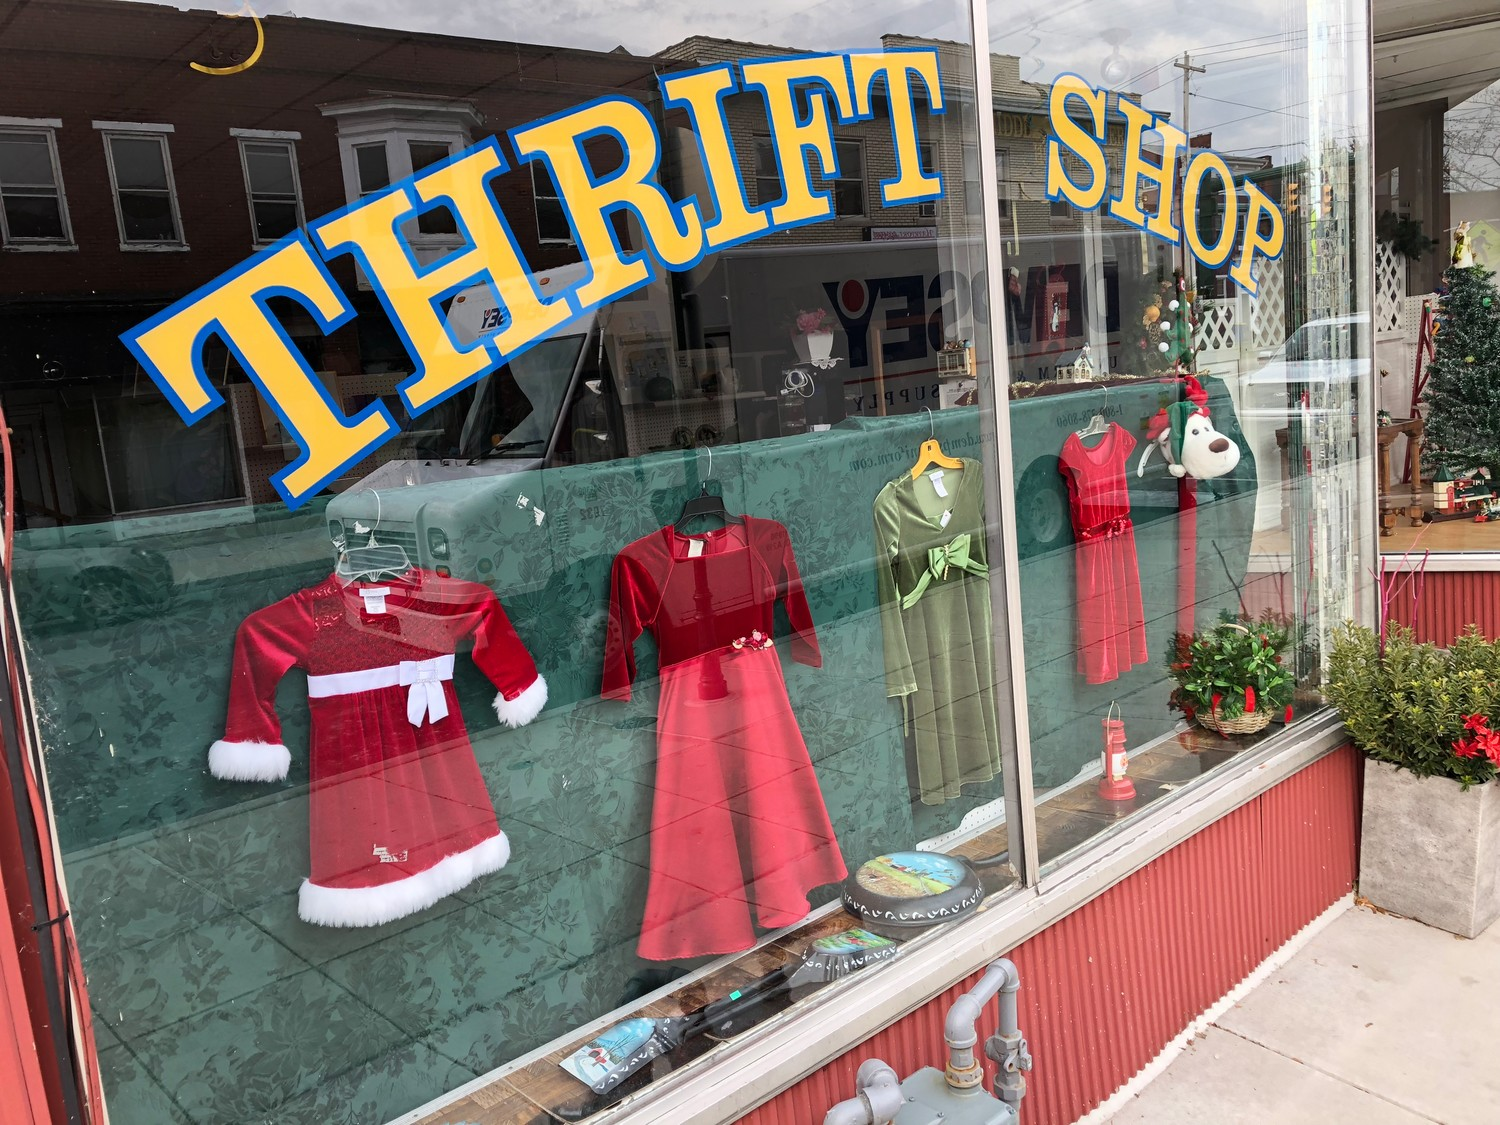 Christmas decorations are evident in the front windows of the Interfaith Senior Service Thrift Shop on South Union Street on Tuesday, but that doesn't mean it's re-opening.